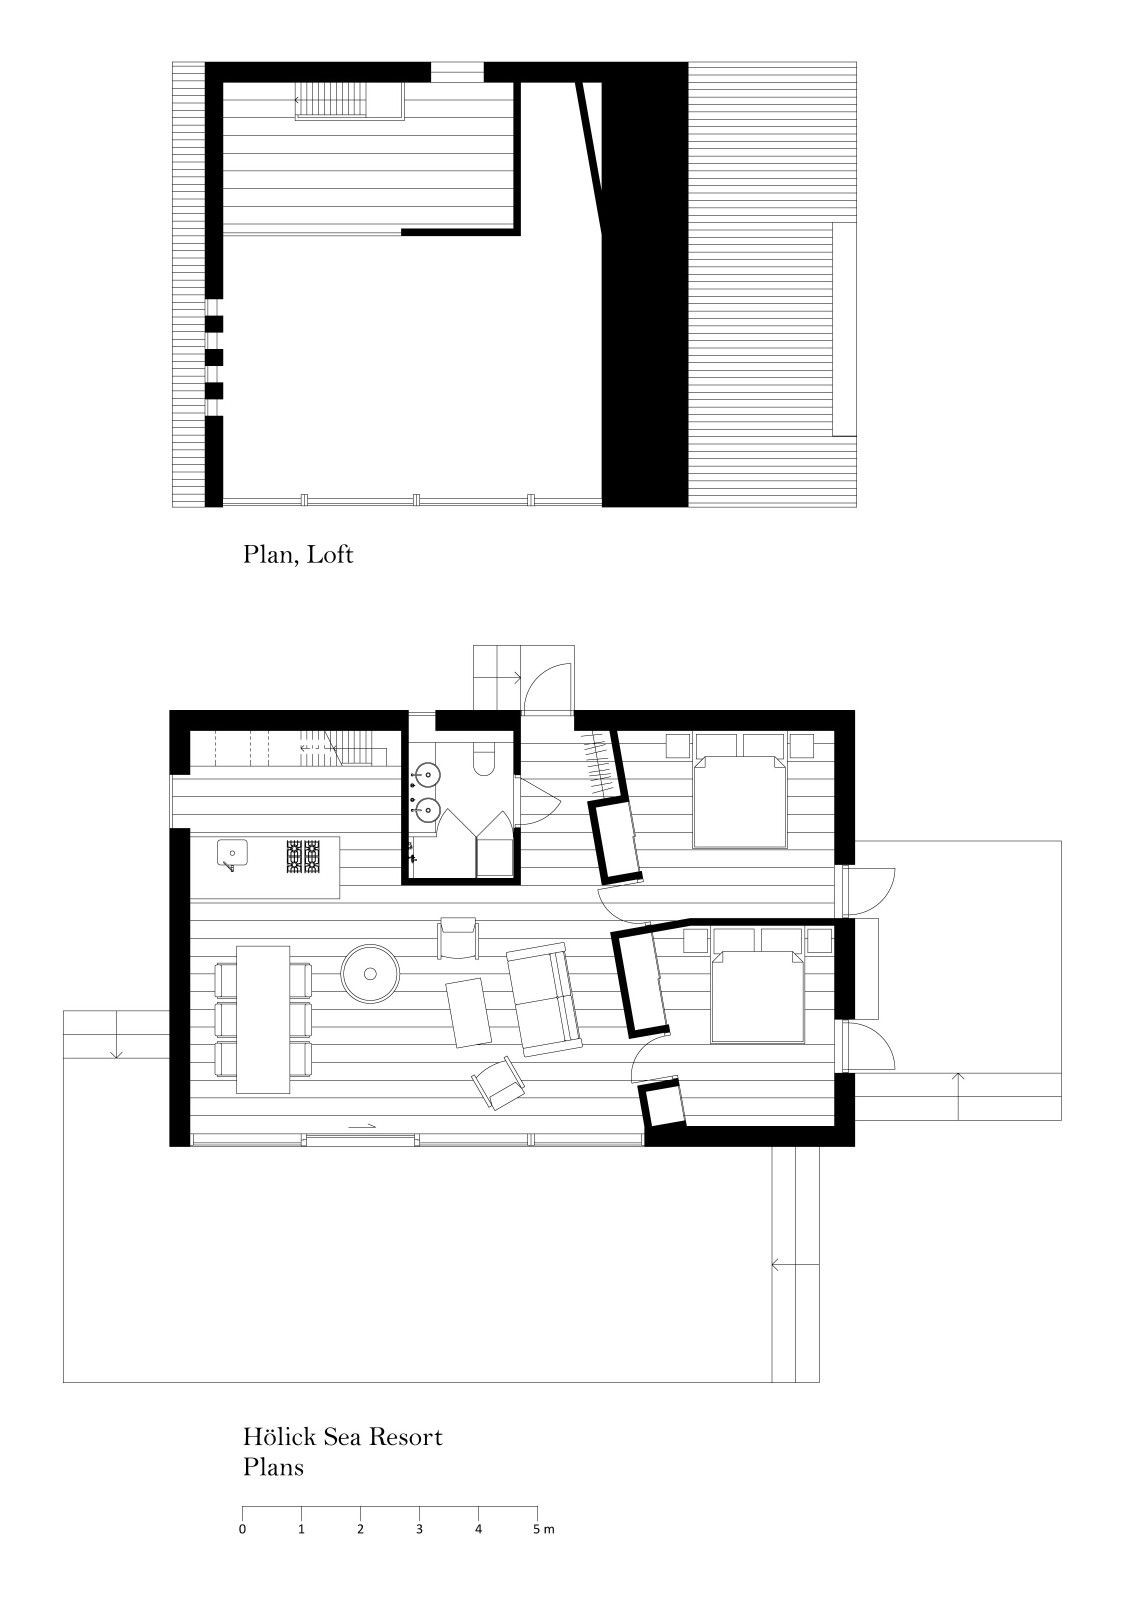 Delicieux Floor Plans Of The Modern Cabins At The Hölick Sea Resort